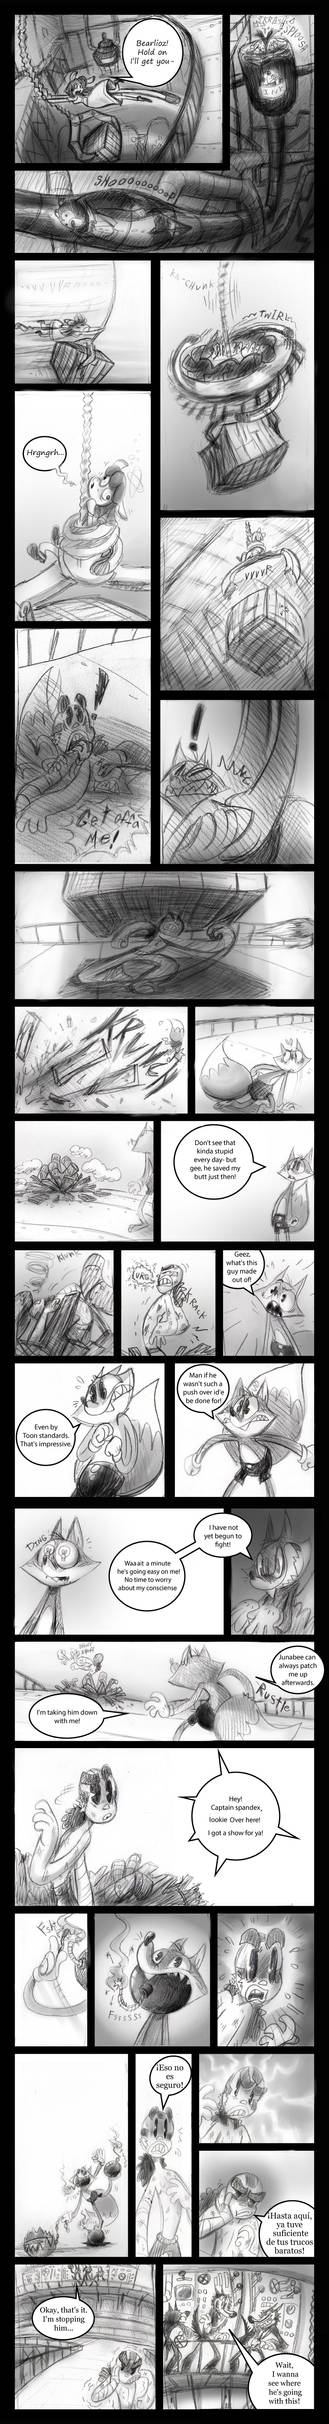 Round 2 Toons Jalapeno Business pg 12